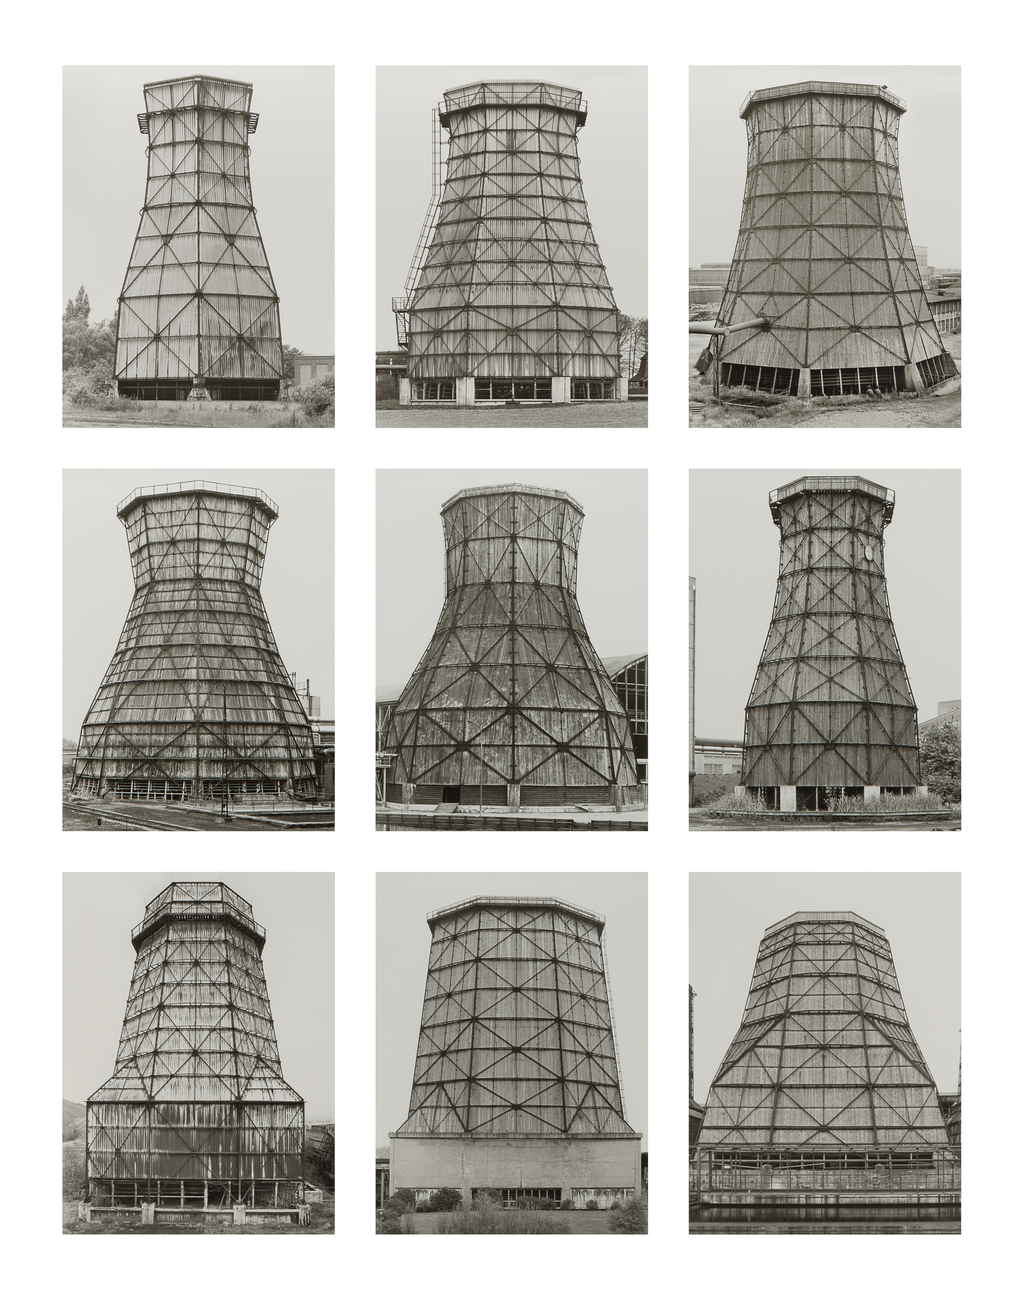 Artwork image, Bernd and Hilla Becher, Kühltürme, Deutschland (Cooling Towers, Germany)